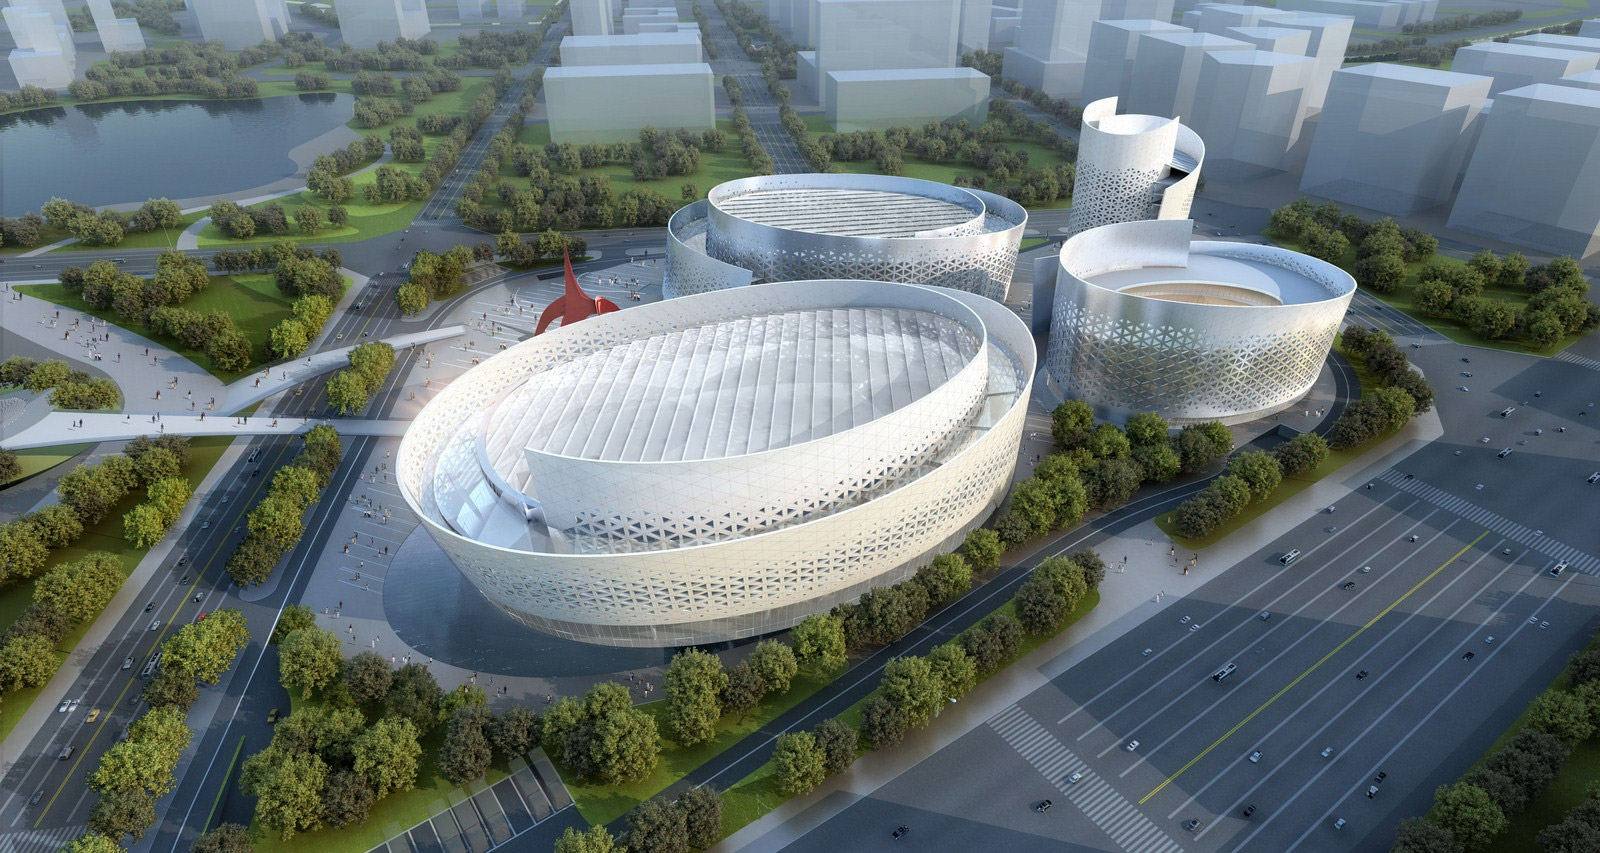 New Performing Arts Complex In Chengdu China By Fuksas